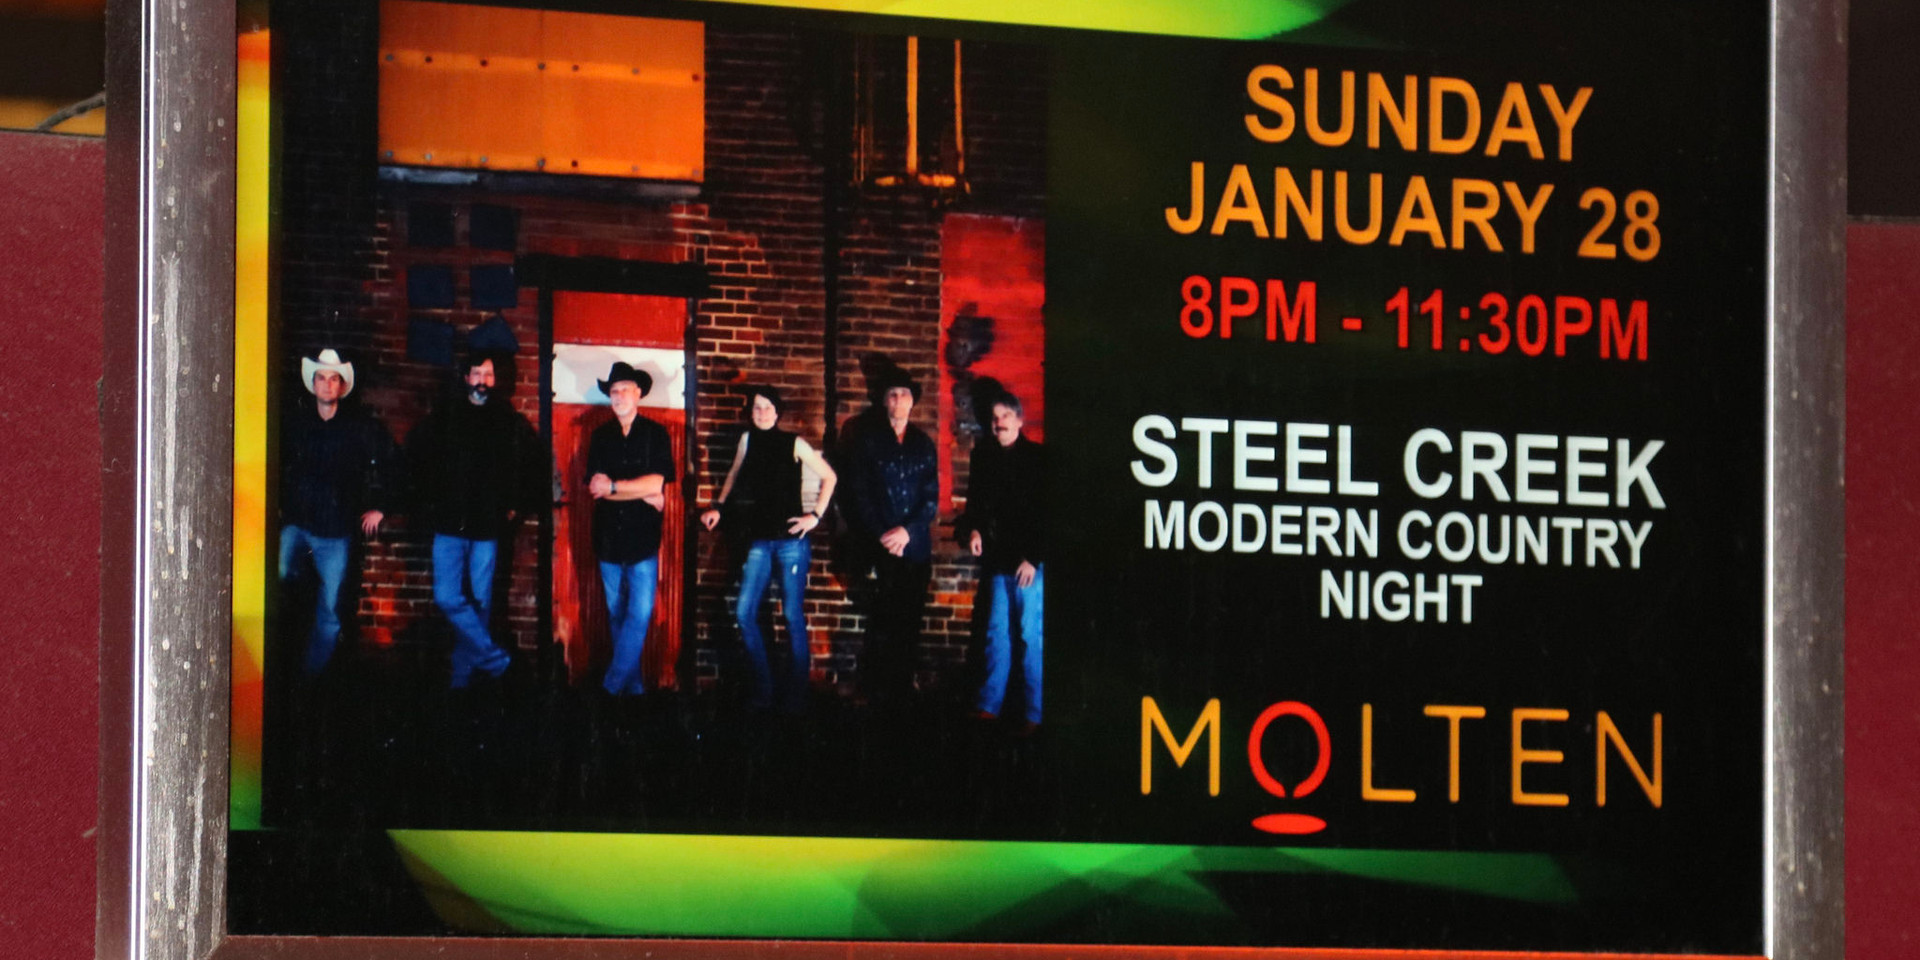 Molten Lounge at Sands Casino